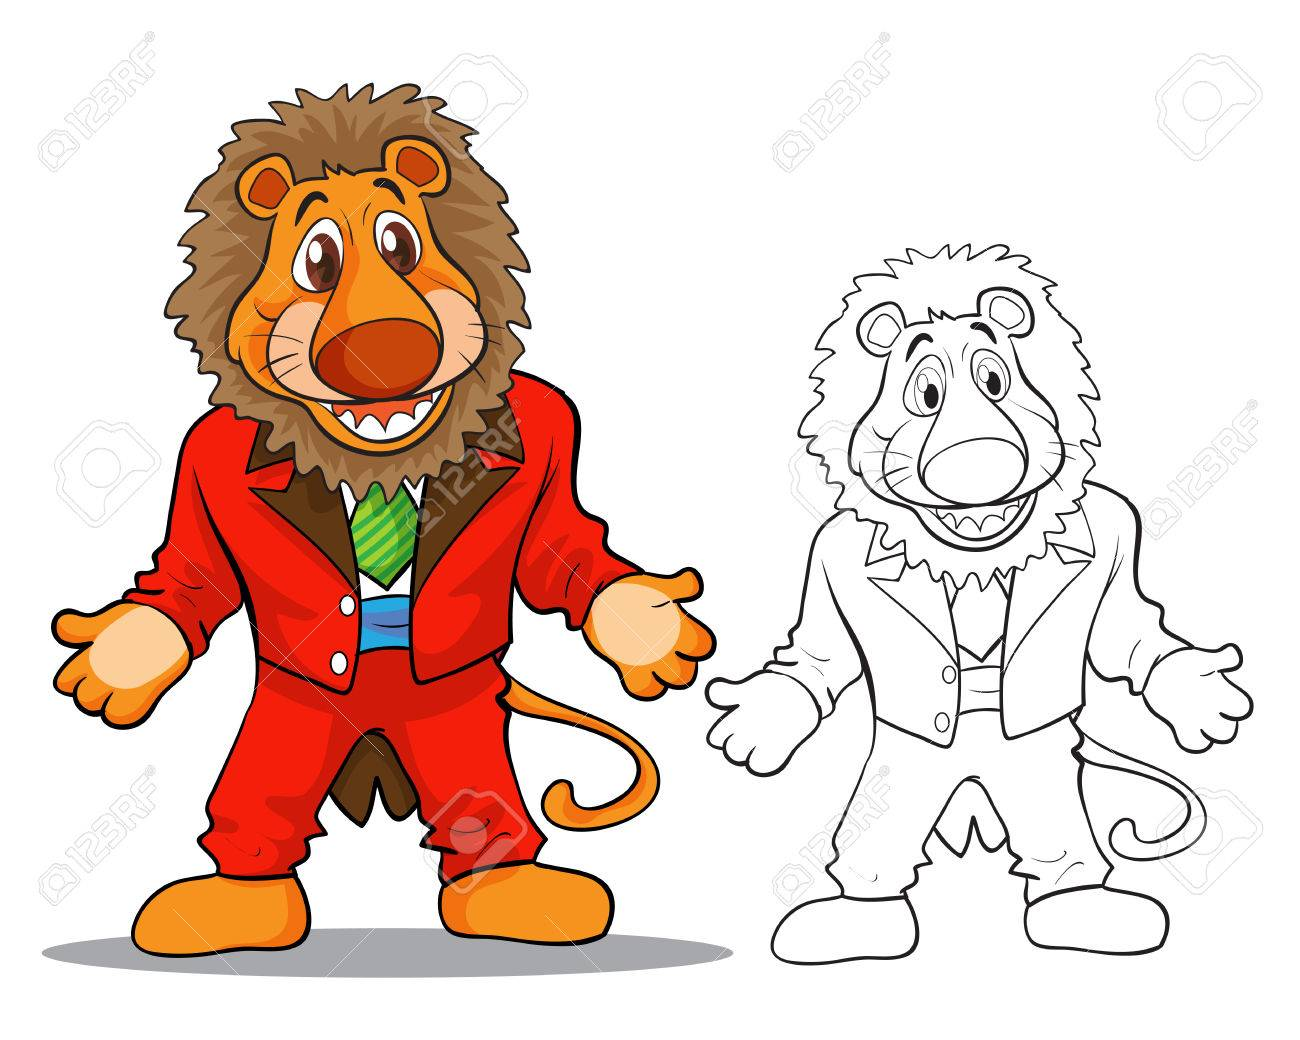 Vector Of Cute Lion Mascot Cartoon Color And Coloring Outline Royalty Free Cliparts Vectors And Stock Illustration Image 62120415 Statues like cute animals for children. 123rf com